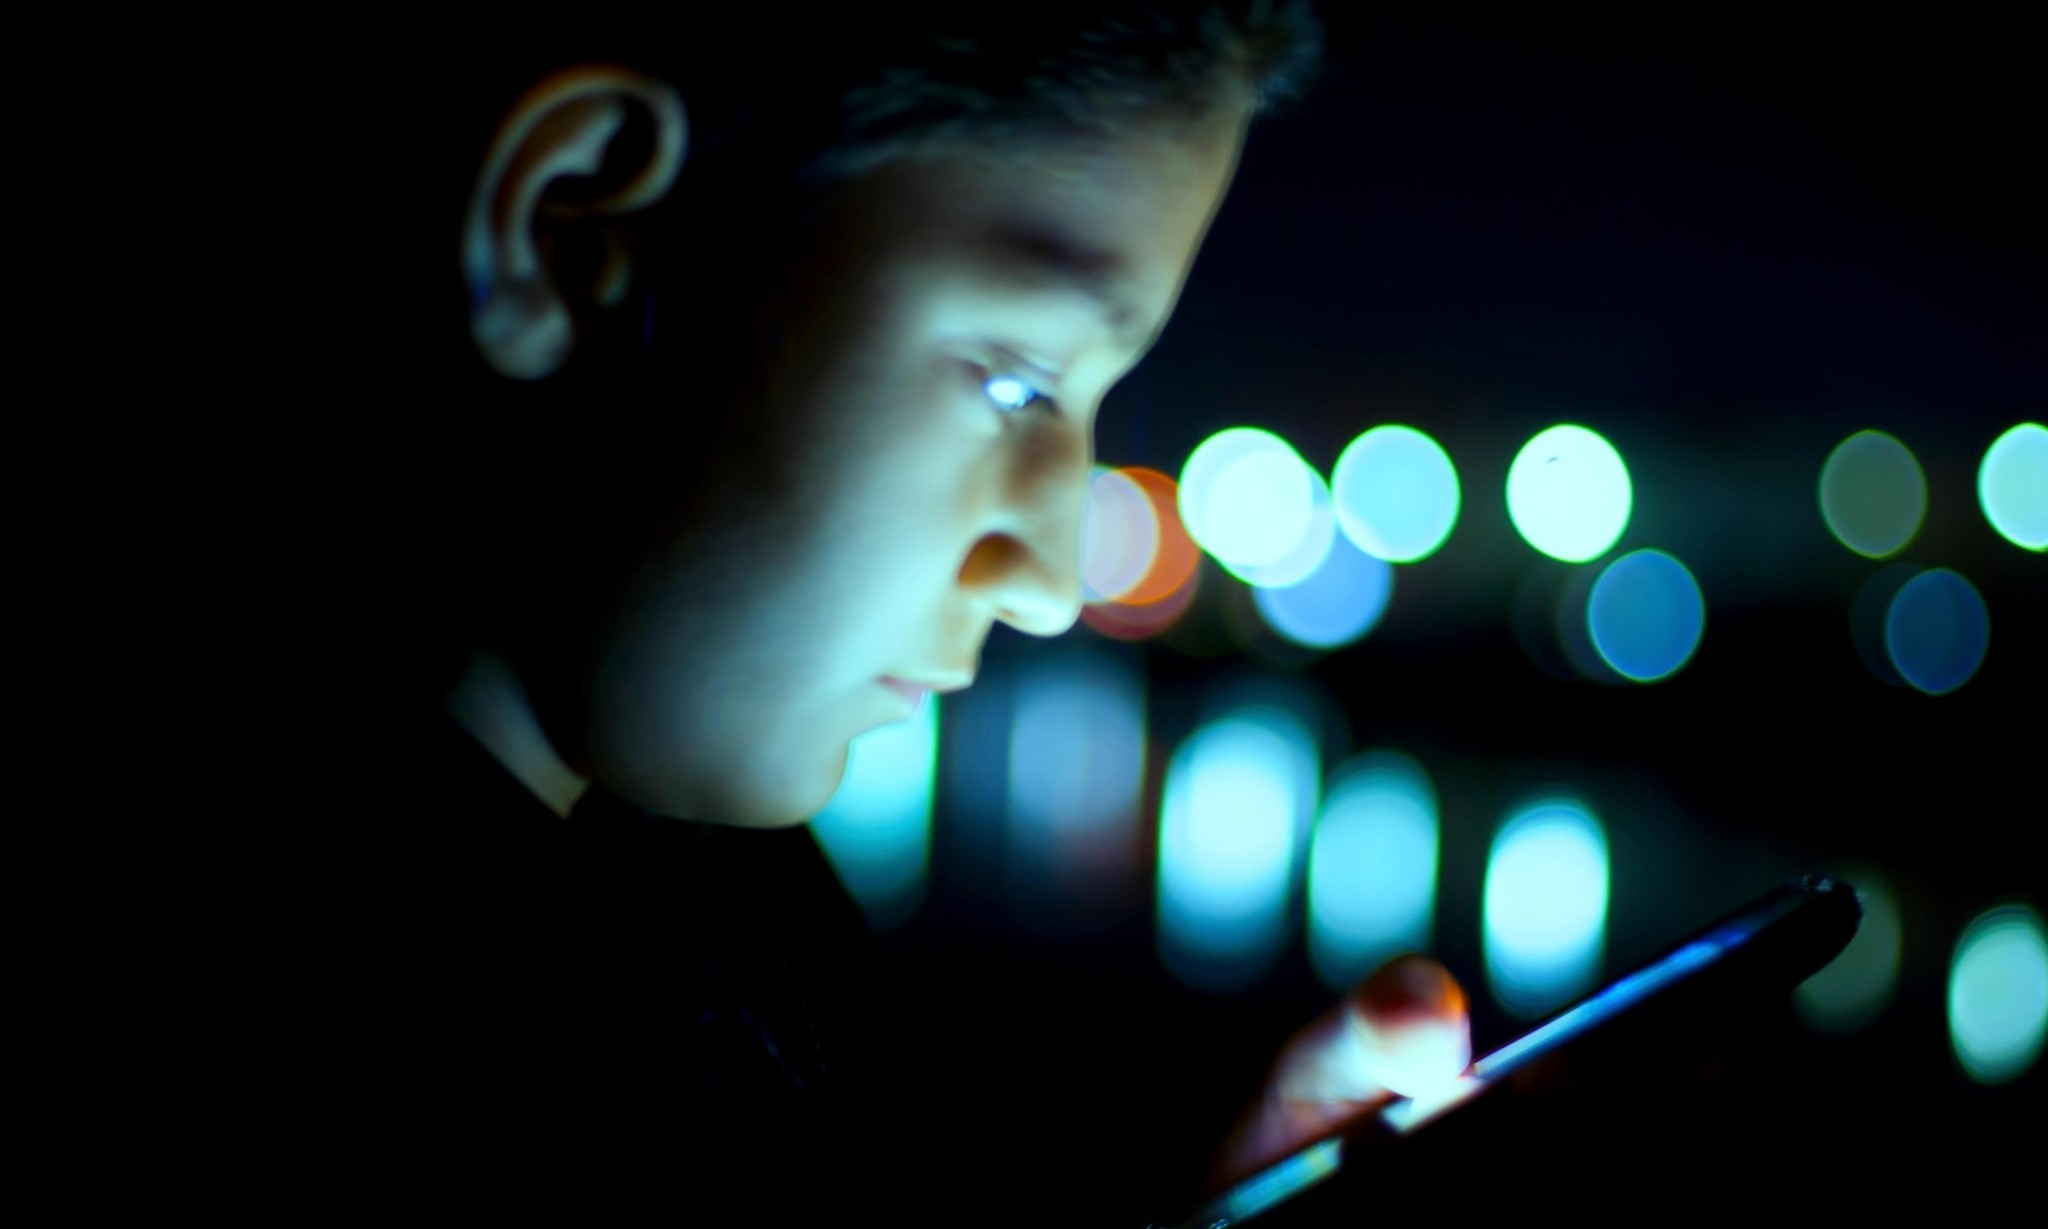 Smartphone users temporarily blinded after looking at screen in bed